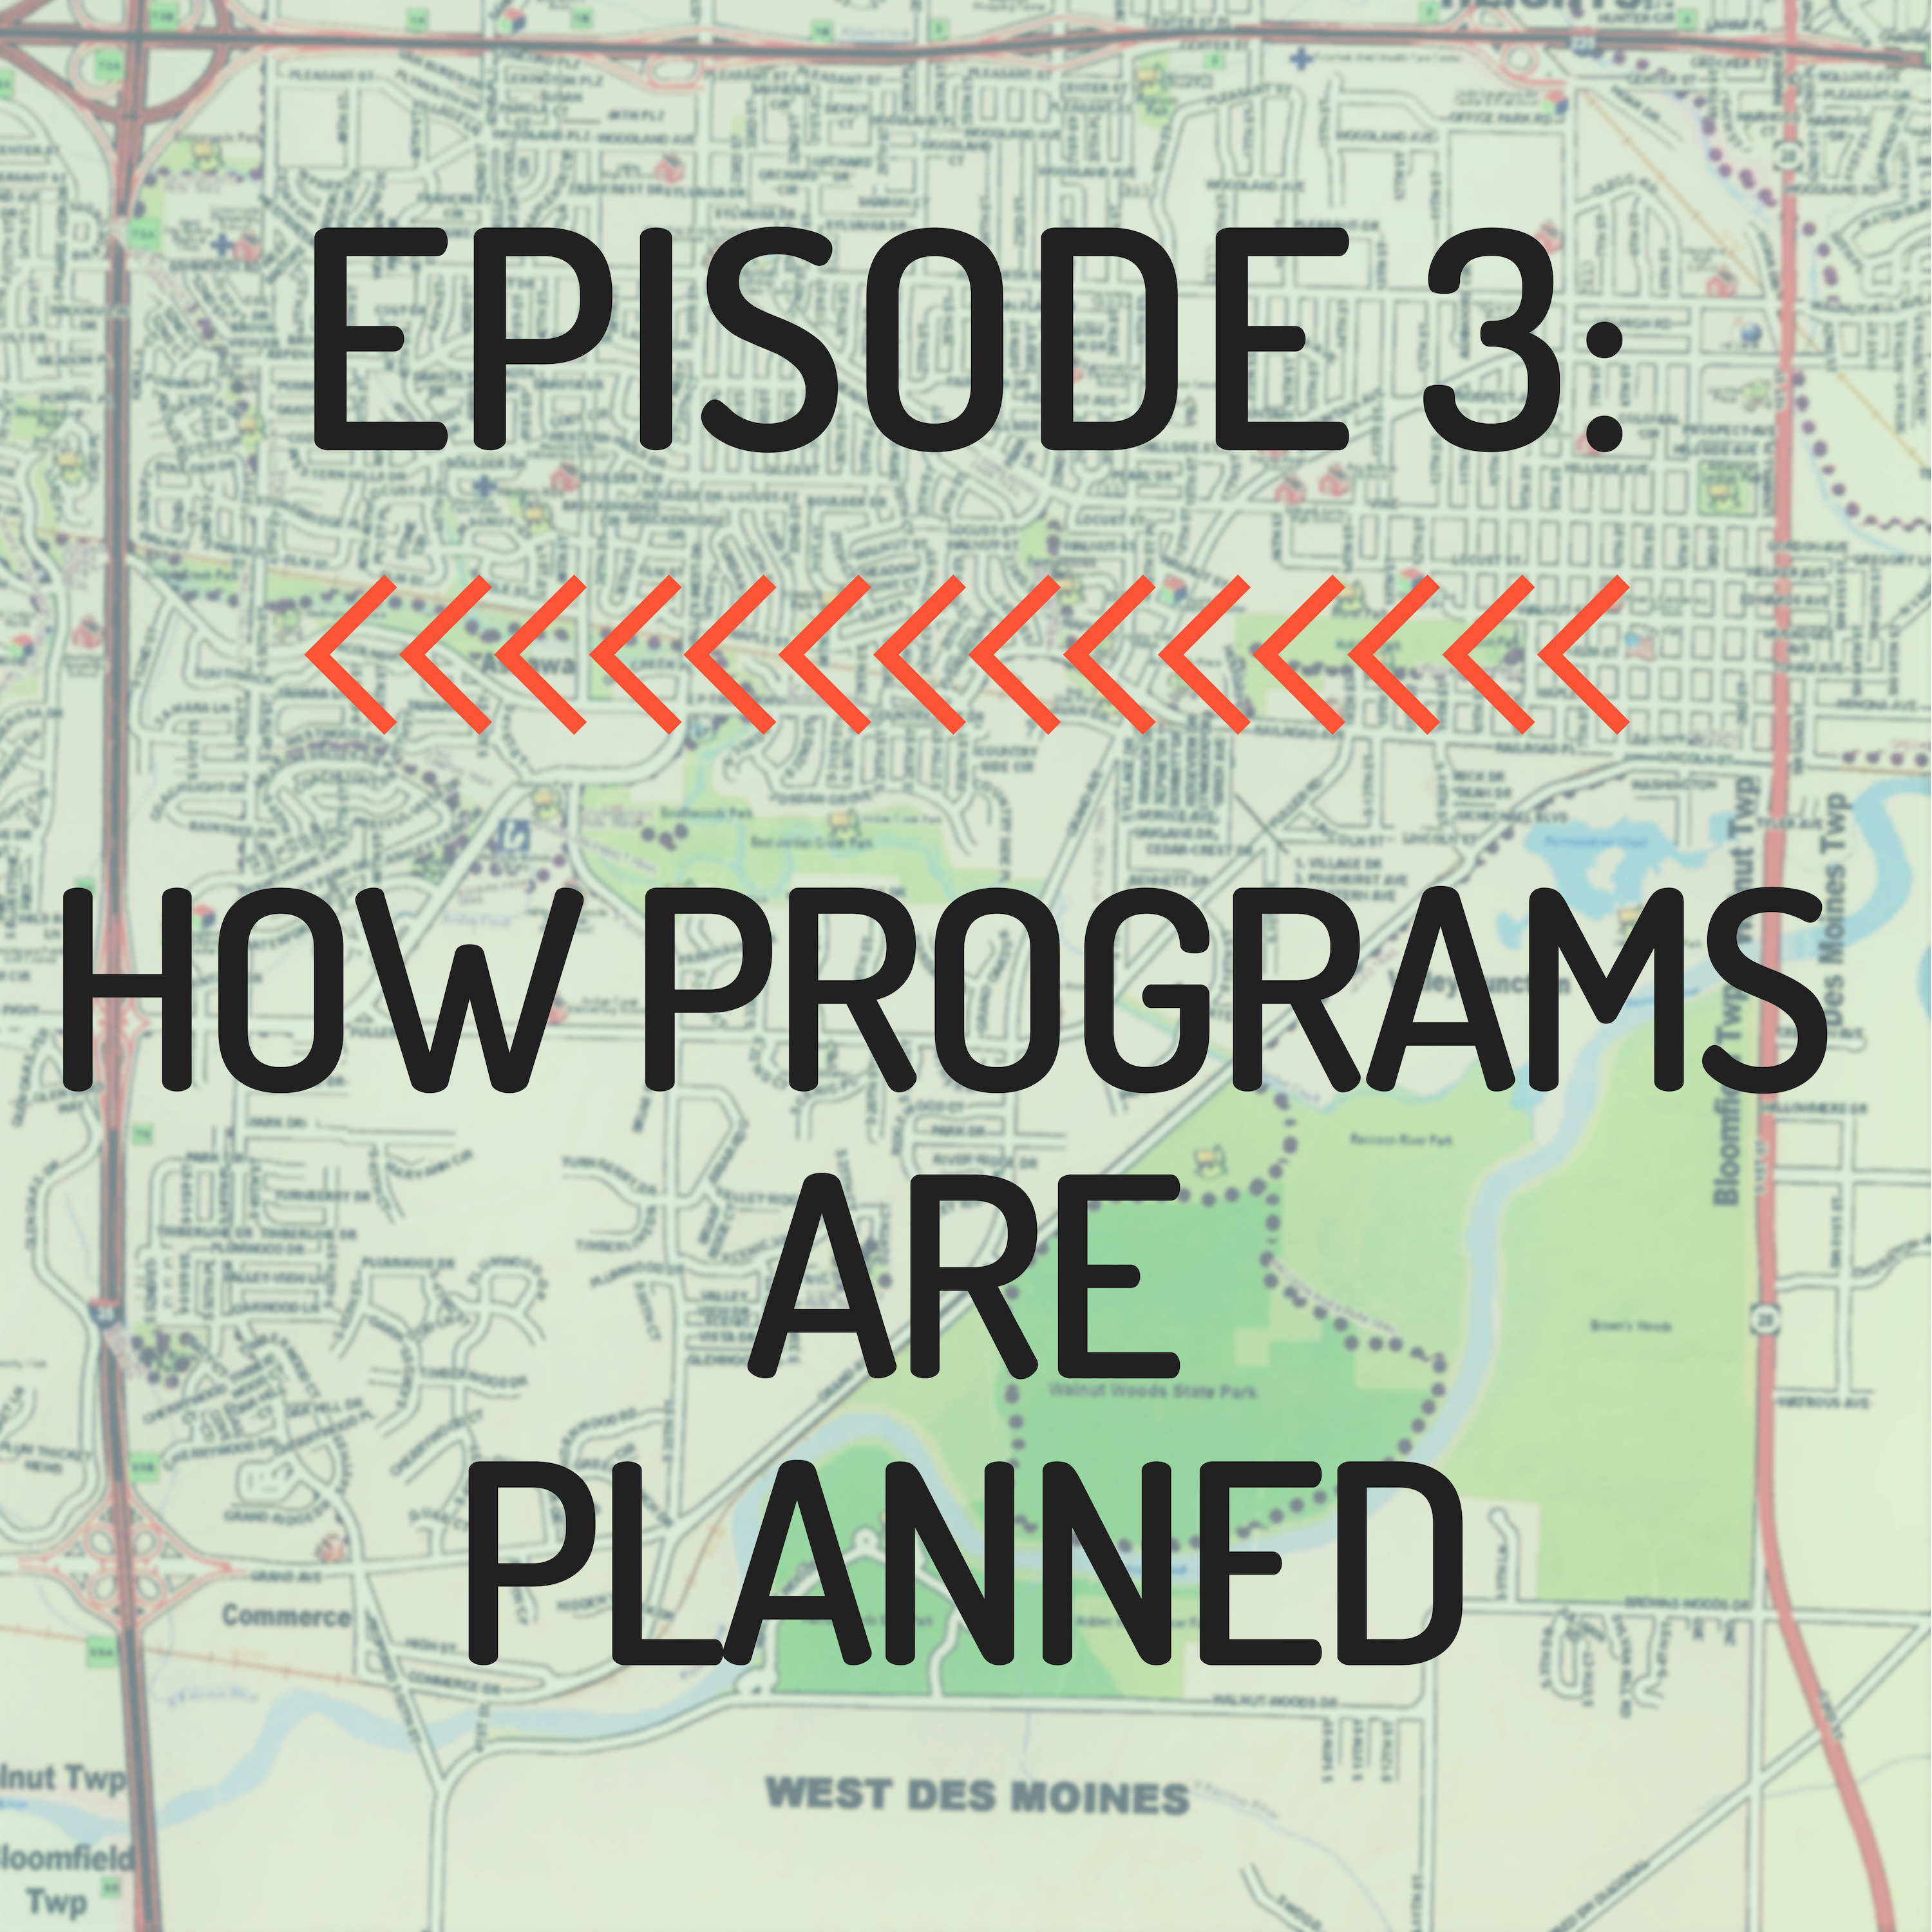 How Programs Are Planned